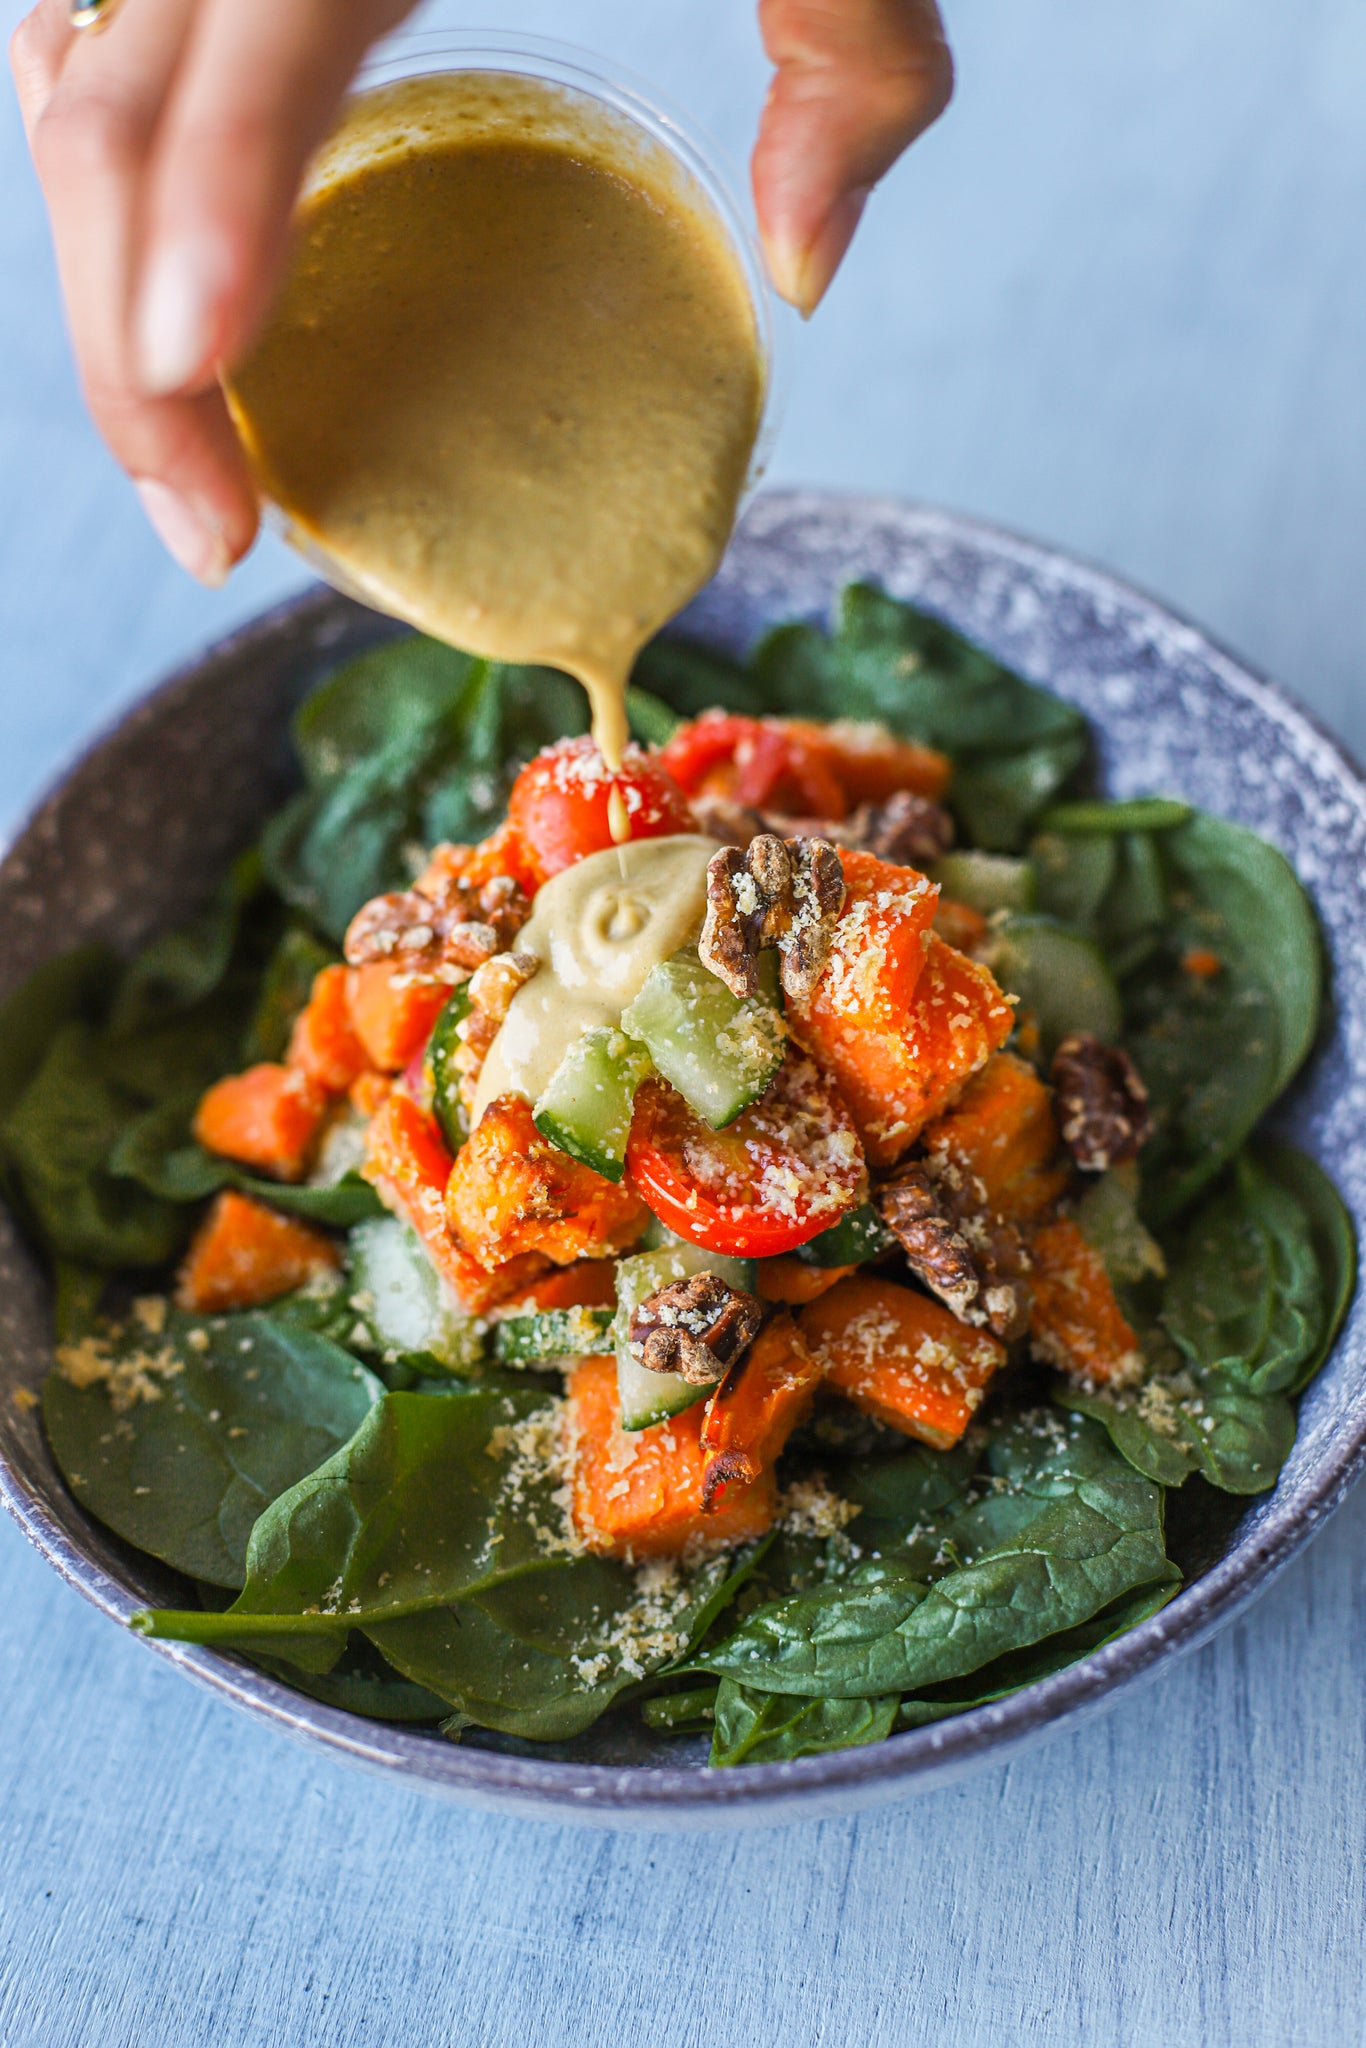 SWEET POTATO CAESAR SALADE